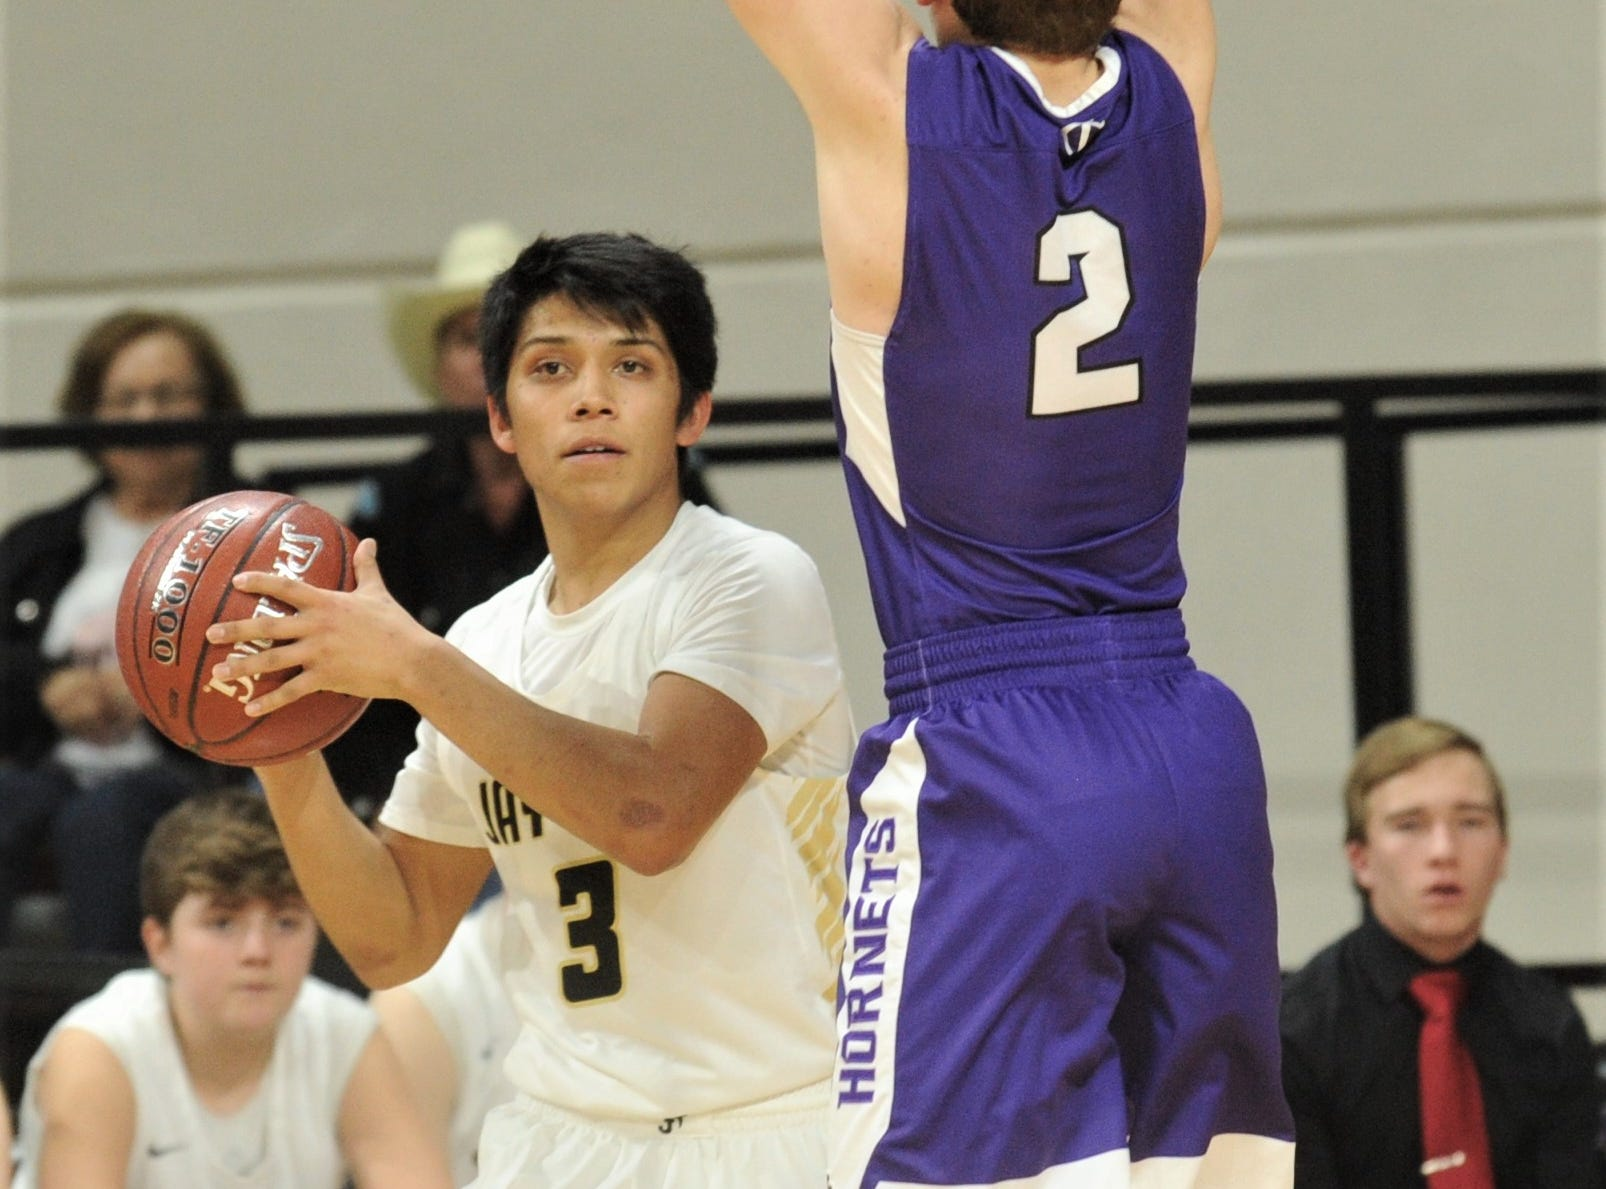 Jayton's Aaron Hernandez, left, looks to pass the ball as Irion County's Kaden Councilman defends. The Jaybirds beat Irion County 47-32 in the Region II-1A championship game Saturday, March 2, 2019, at Abilene Christian's Moody Coliseum.